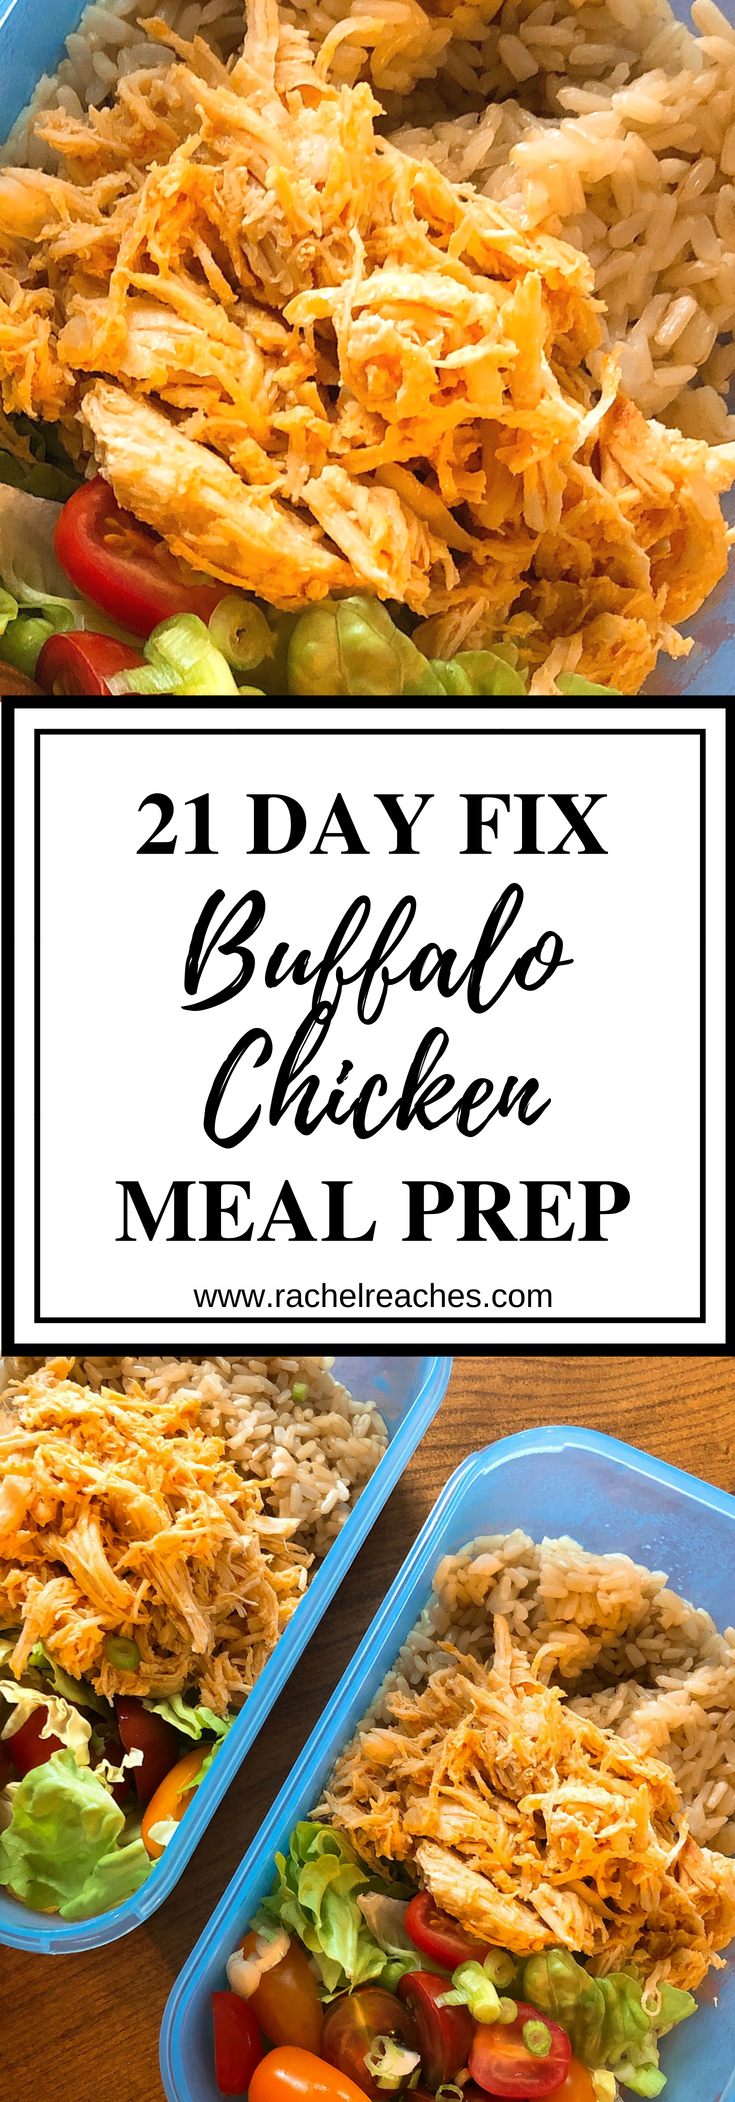 Buffalo Chicken Meal Prep Pin - 21 Day Fix.png